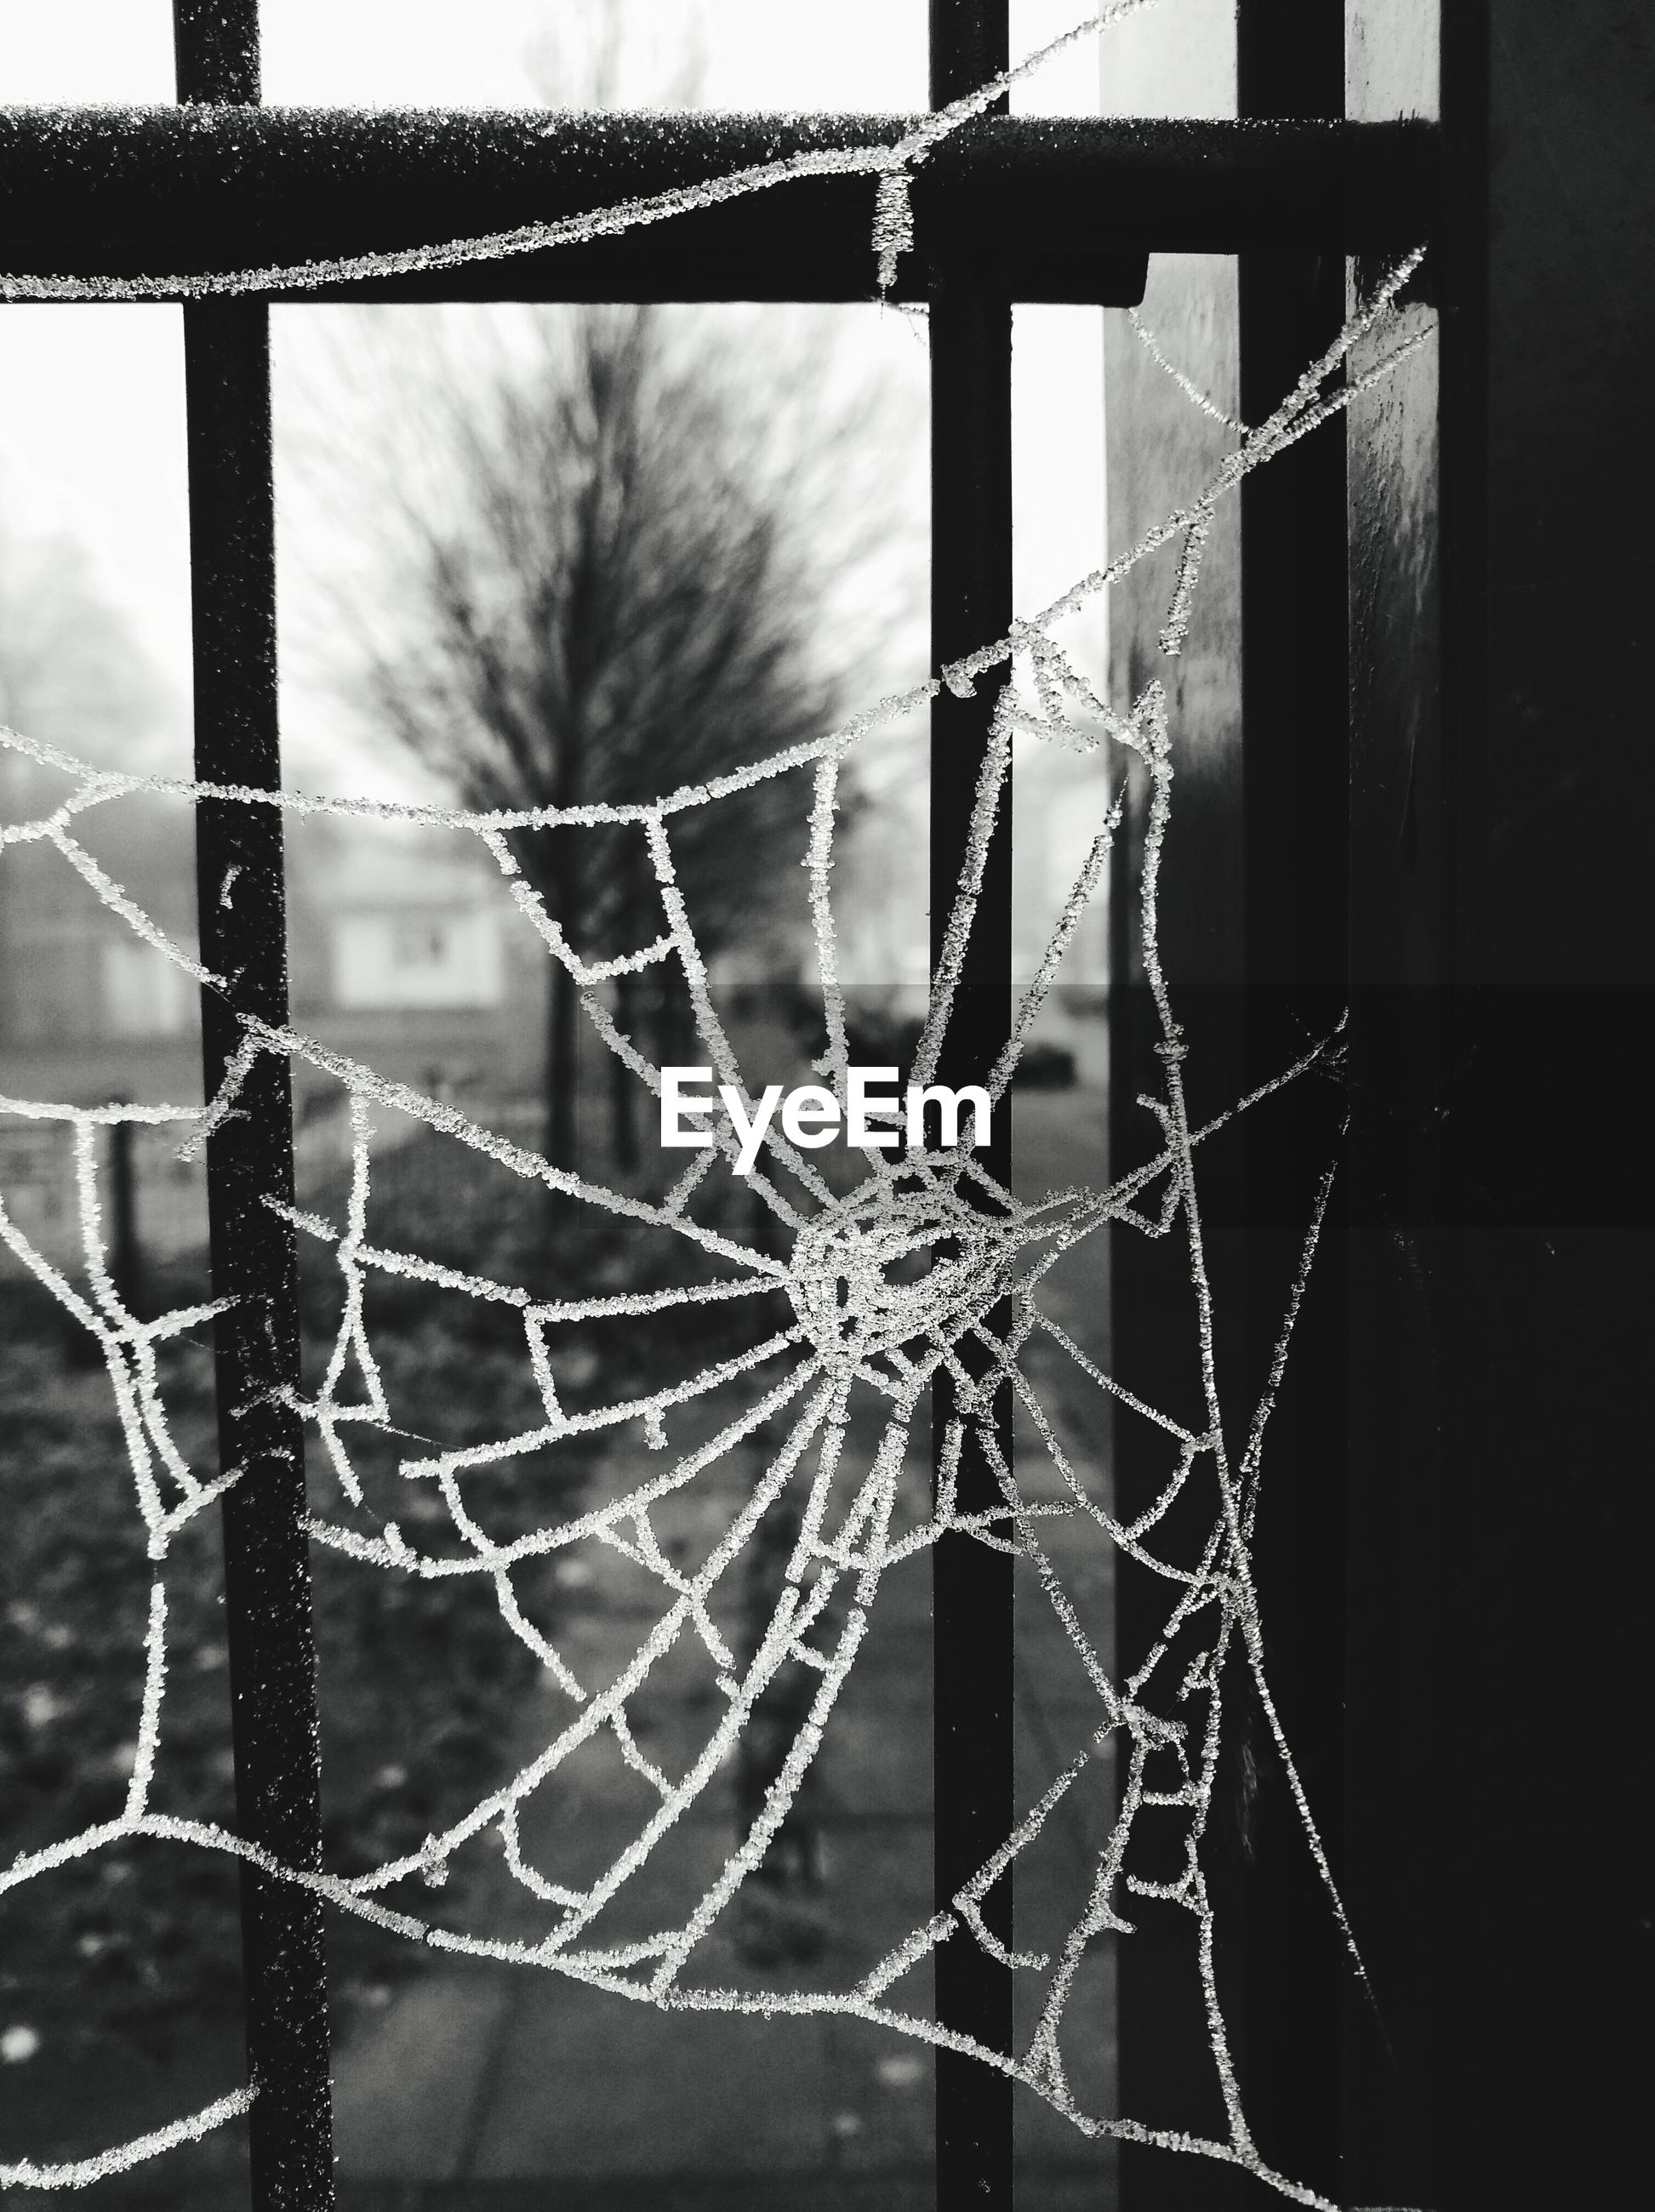 CLOSE-UP OF SPIDER WEB ON WINDOW AGAINST BLURRED BACKGROUND